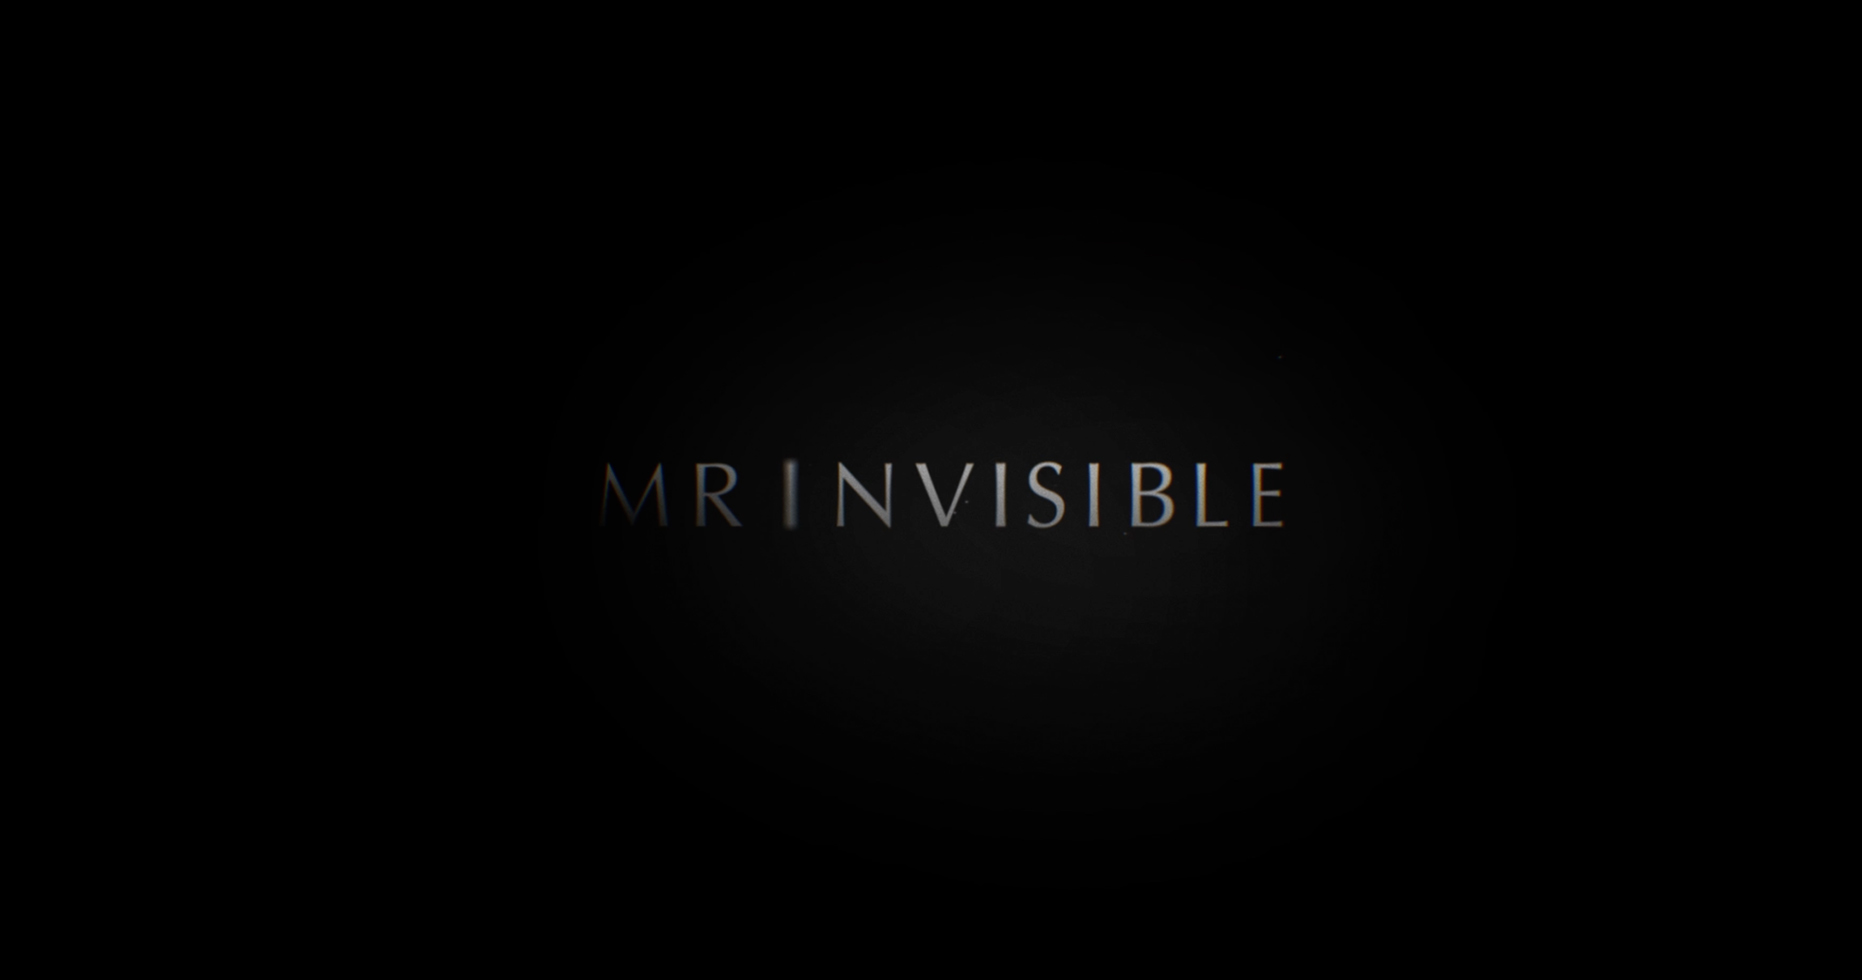 Black screen with the letters 'invisible' in heavy shadow